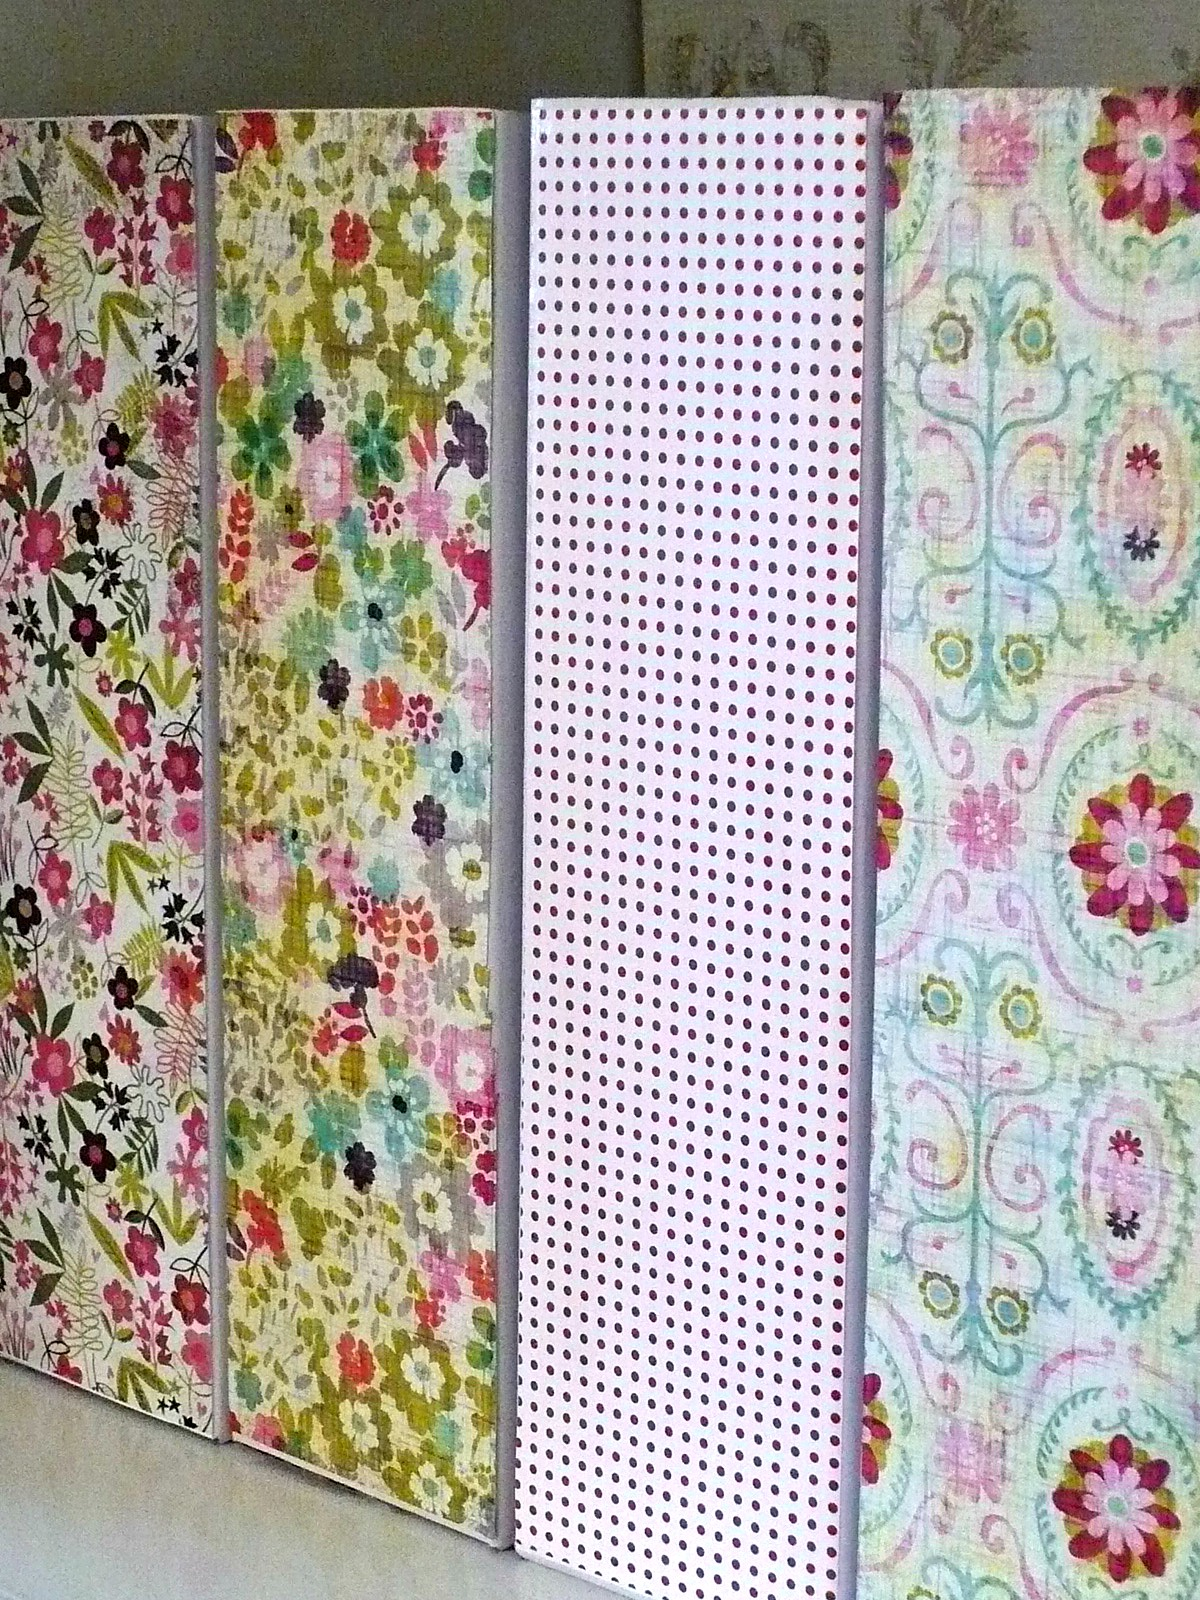 Yw scrapbook paper - Scrapbook Paper Rack Scrapbook Paper Storage Diy Pretty Magazine Storage Bo